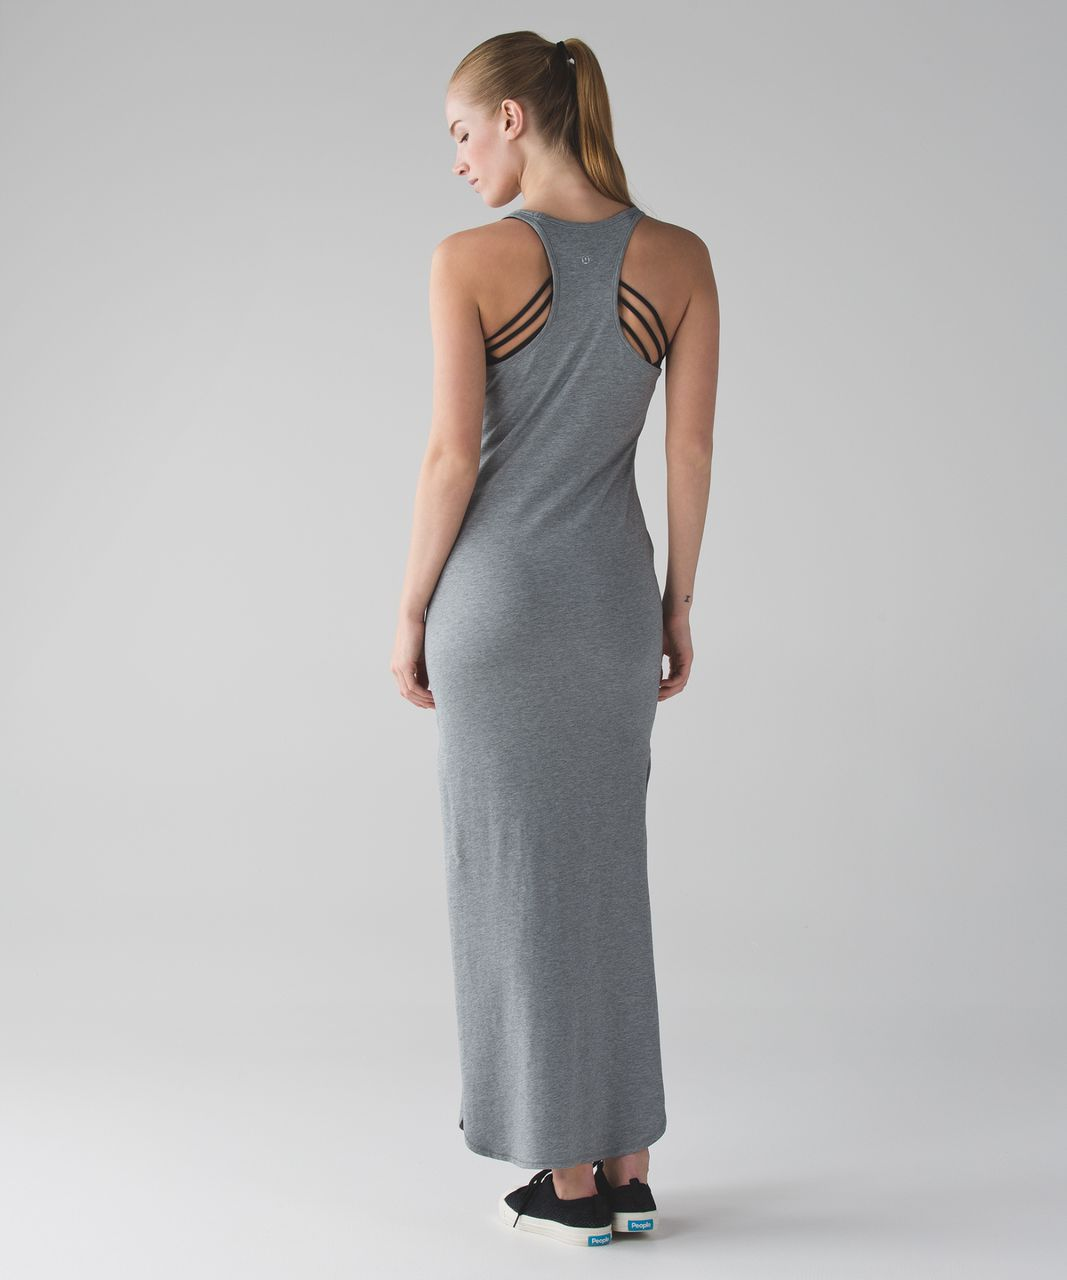 8eaf76386d9 Lululemon Refresh Maxi Dress II - Heathered Medium Grey (First Release) -  lulu fanatics